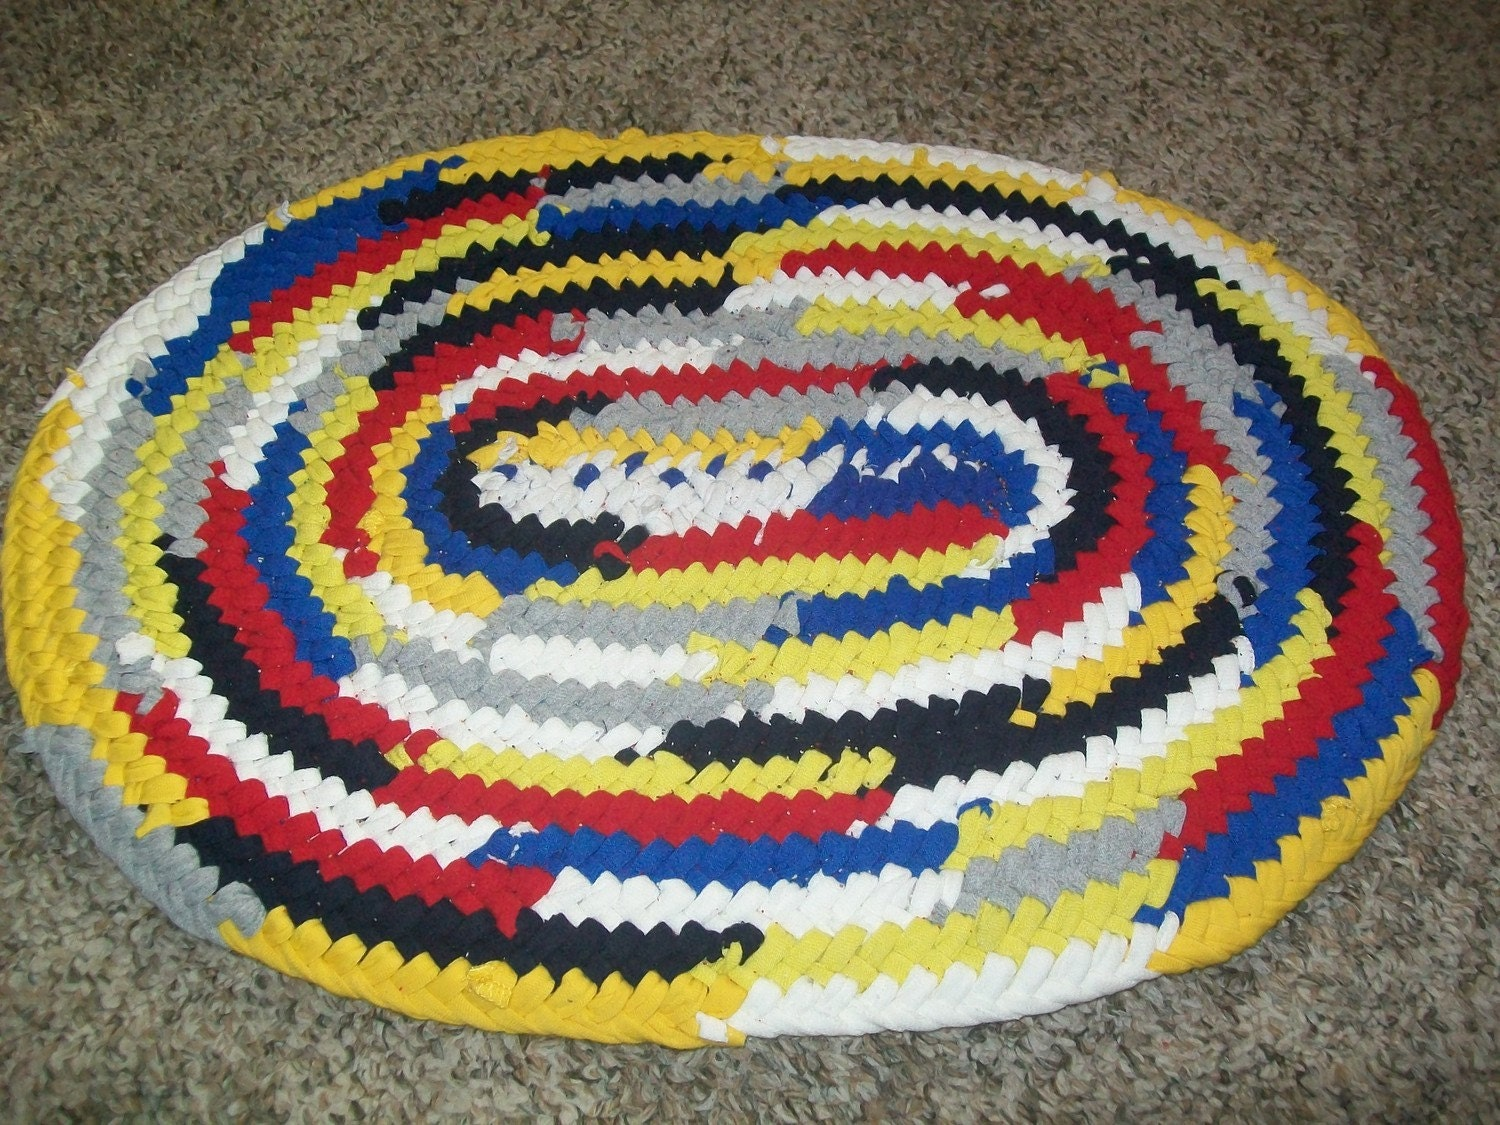 Toothbrush Rug Multi Colored